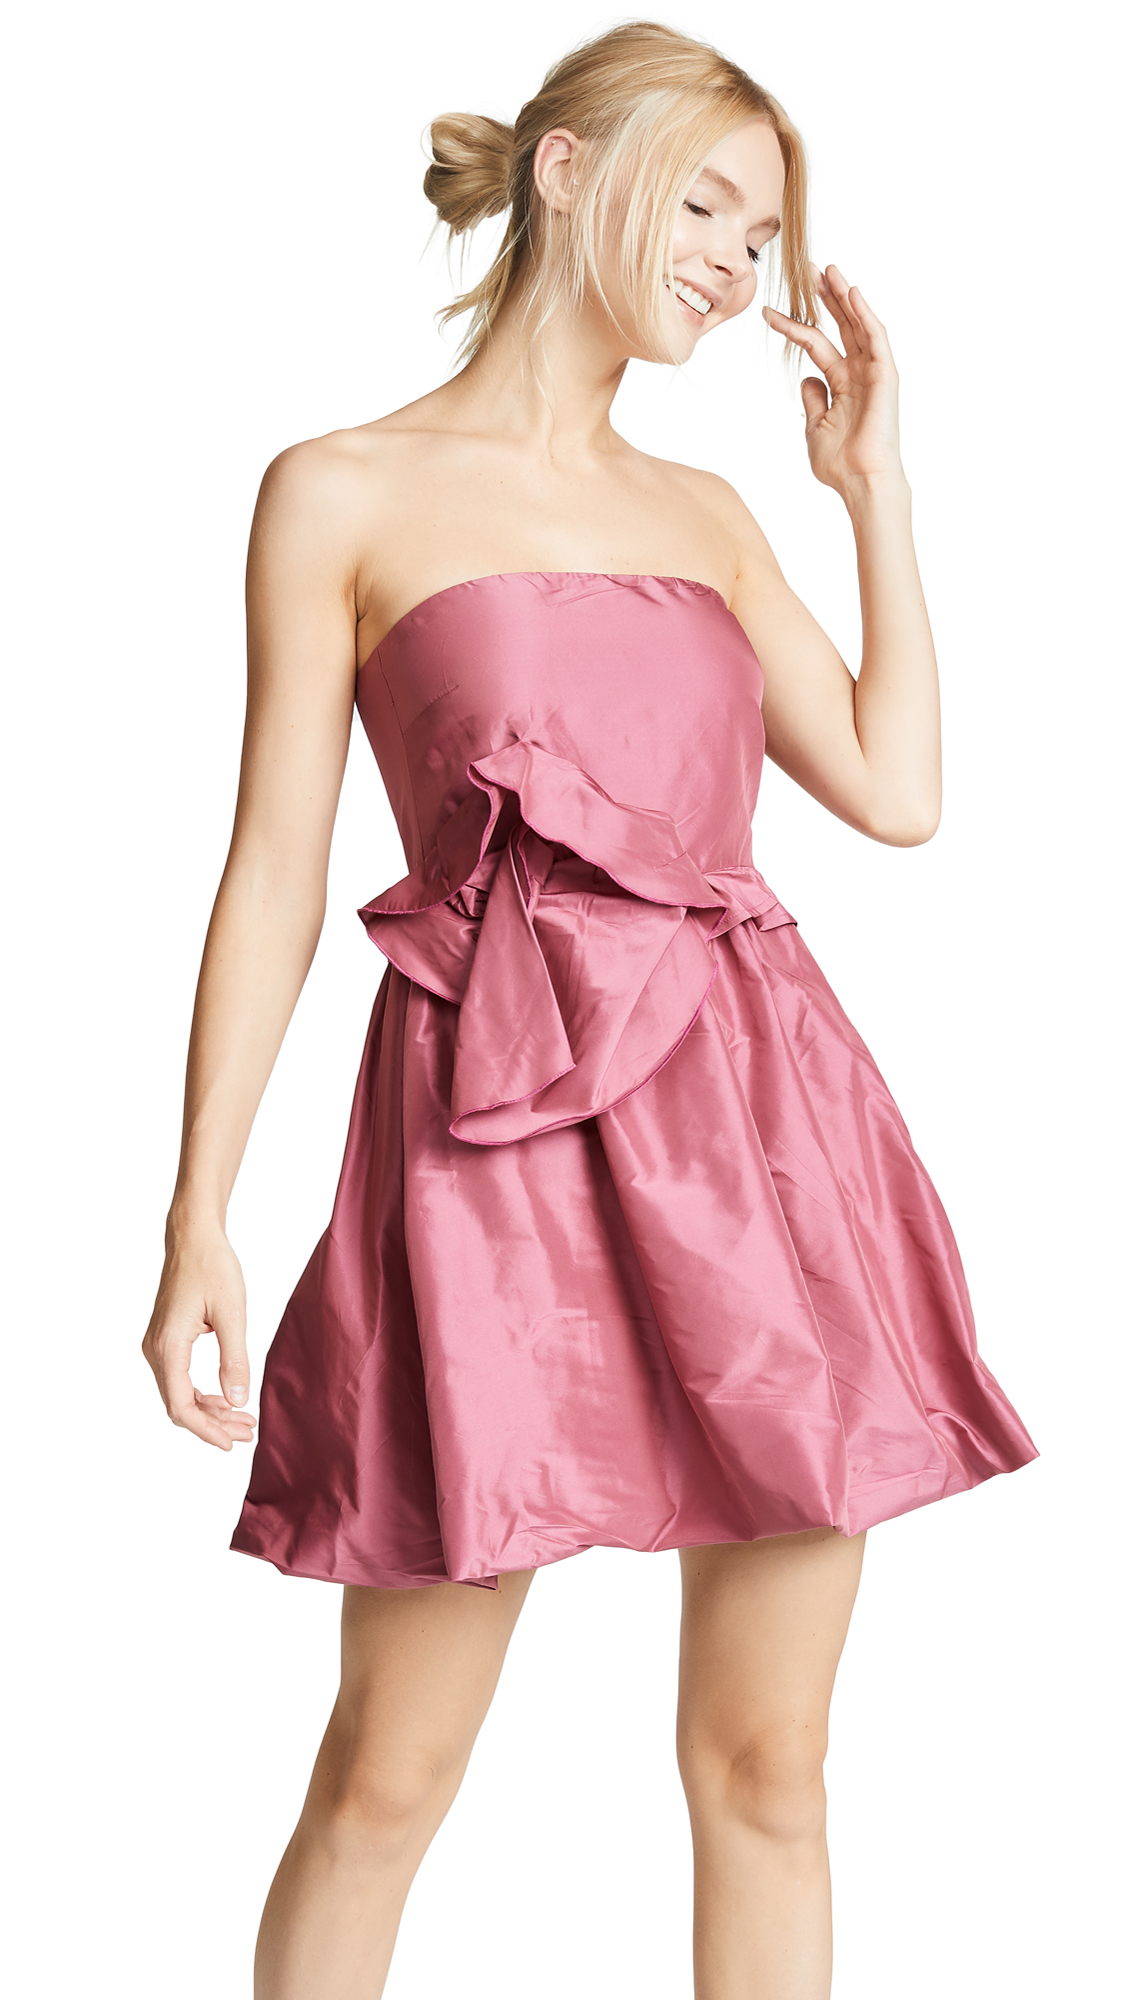 Cynthia Rowley Babydoll Mini Dress - Rose